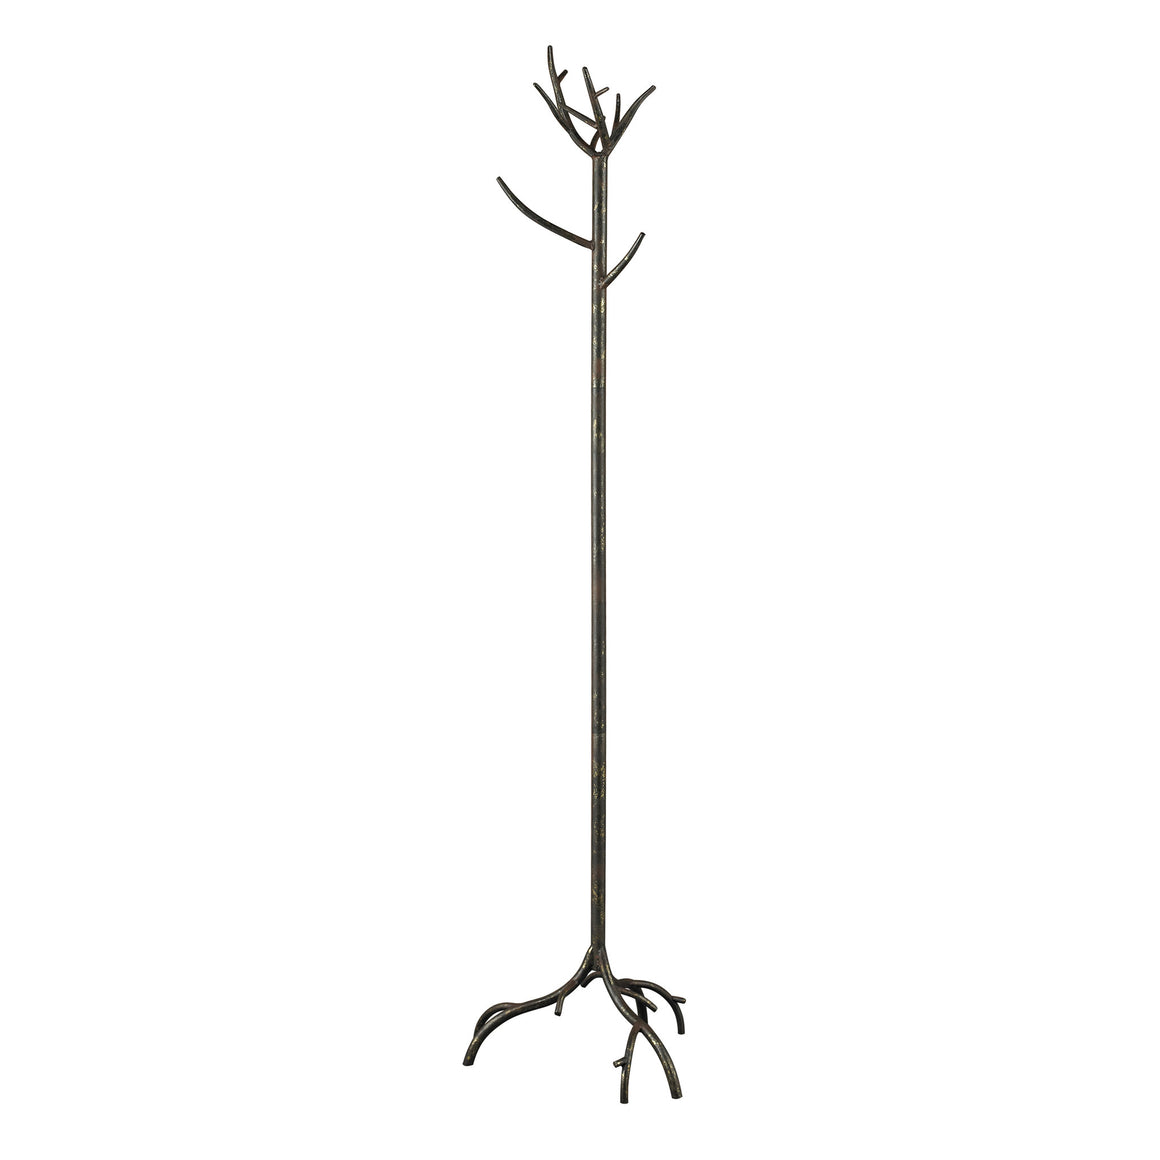 Kimberly Branch Coat Rack by Sterling